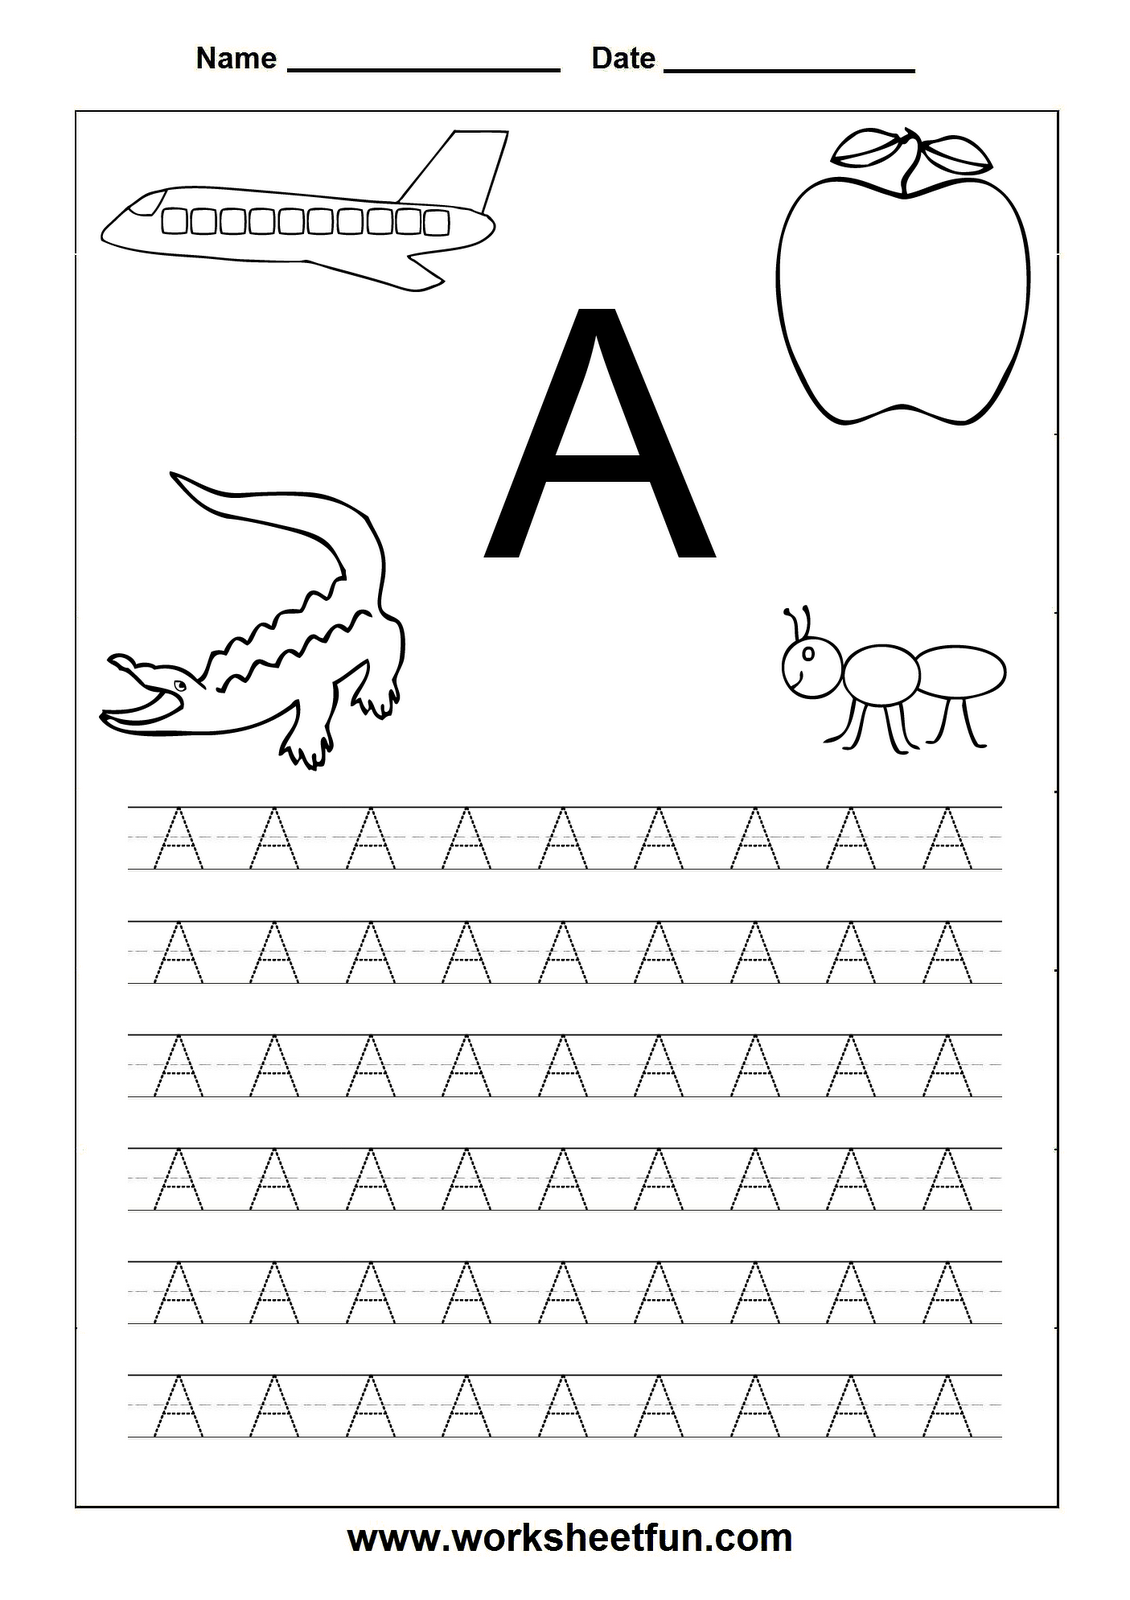 printables free printable preschool worksheets tracing letters free printable tracing letter s worksheets for preschool a z